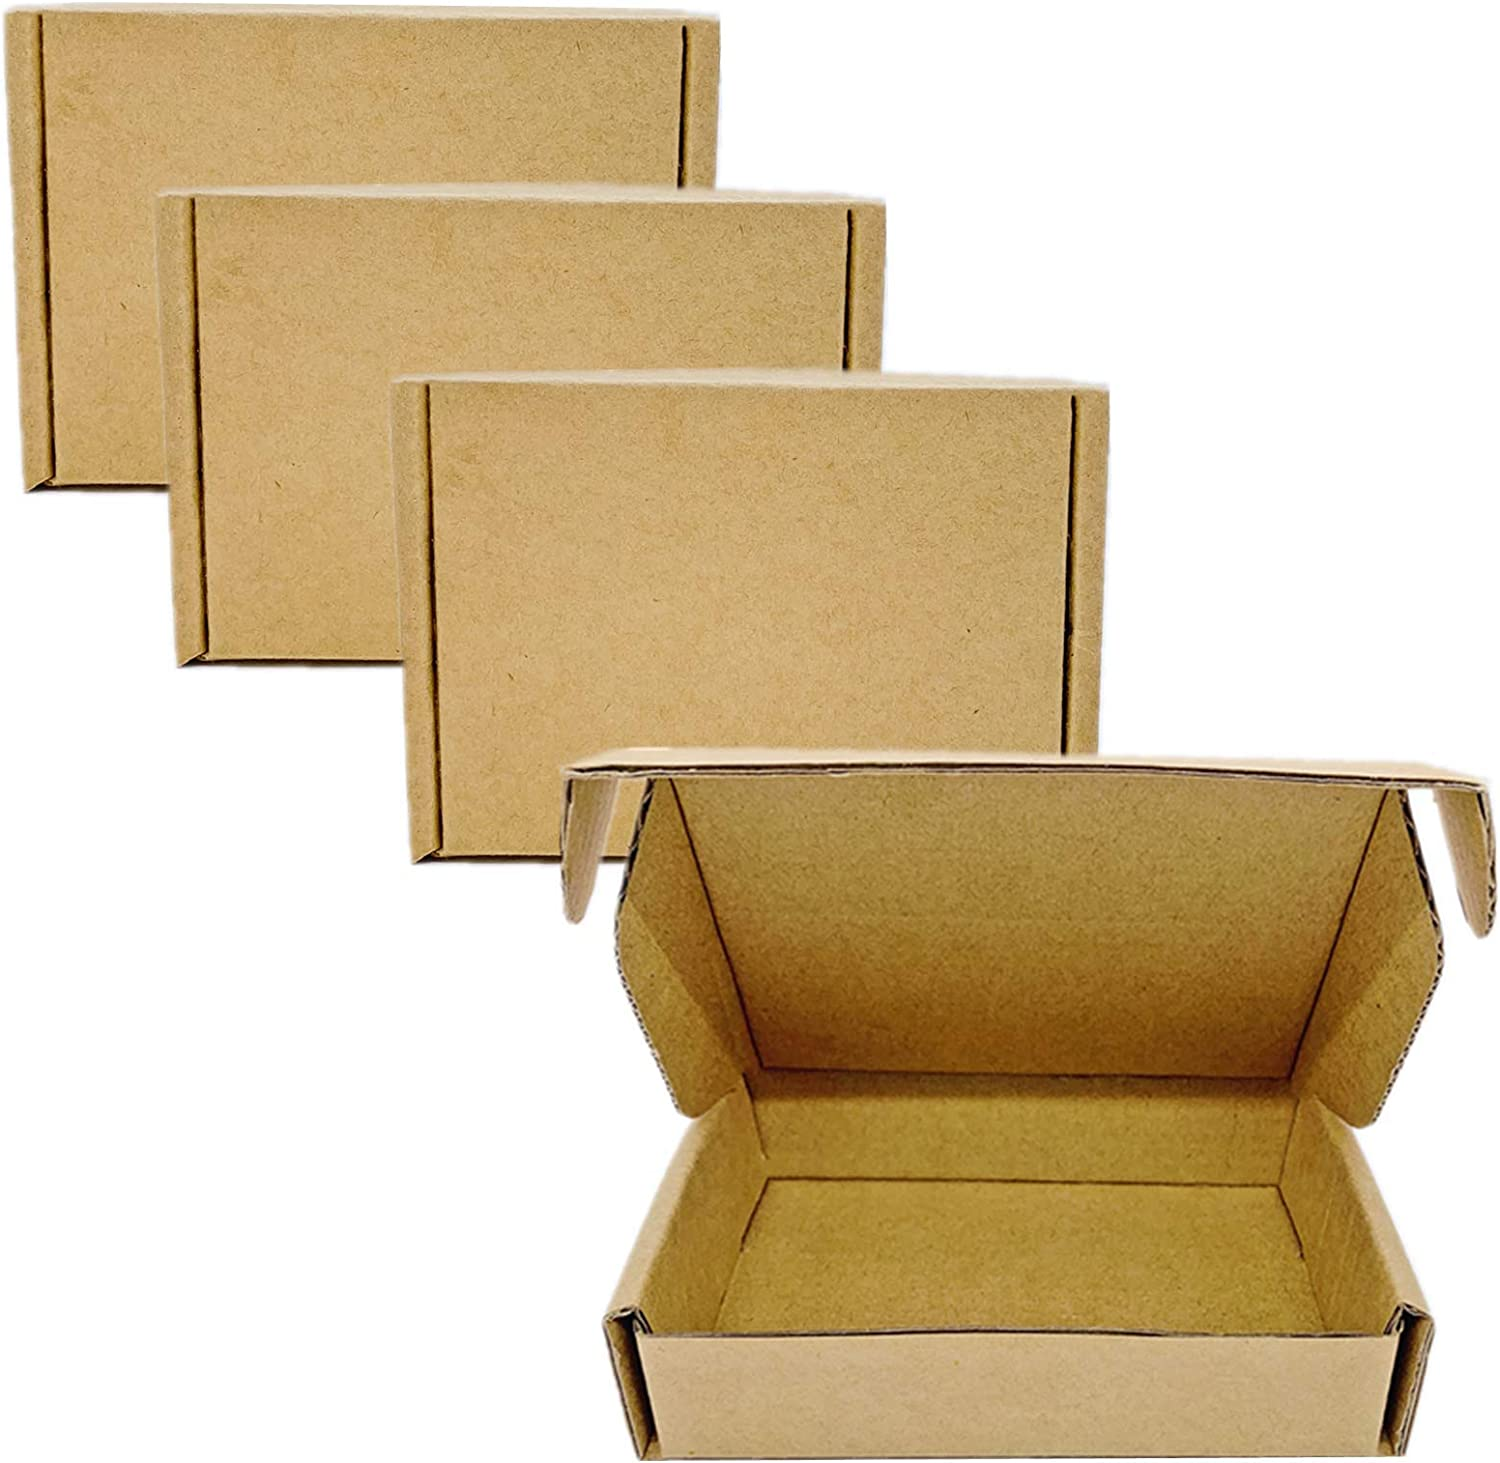 Small Max 82% 5% OFF OFF Corrugated Boxes Mailers inch 9x6.29x2 Ma Kraft